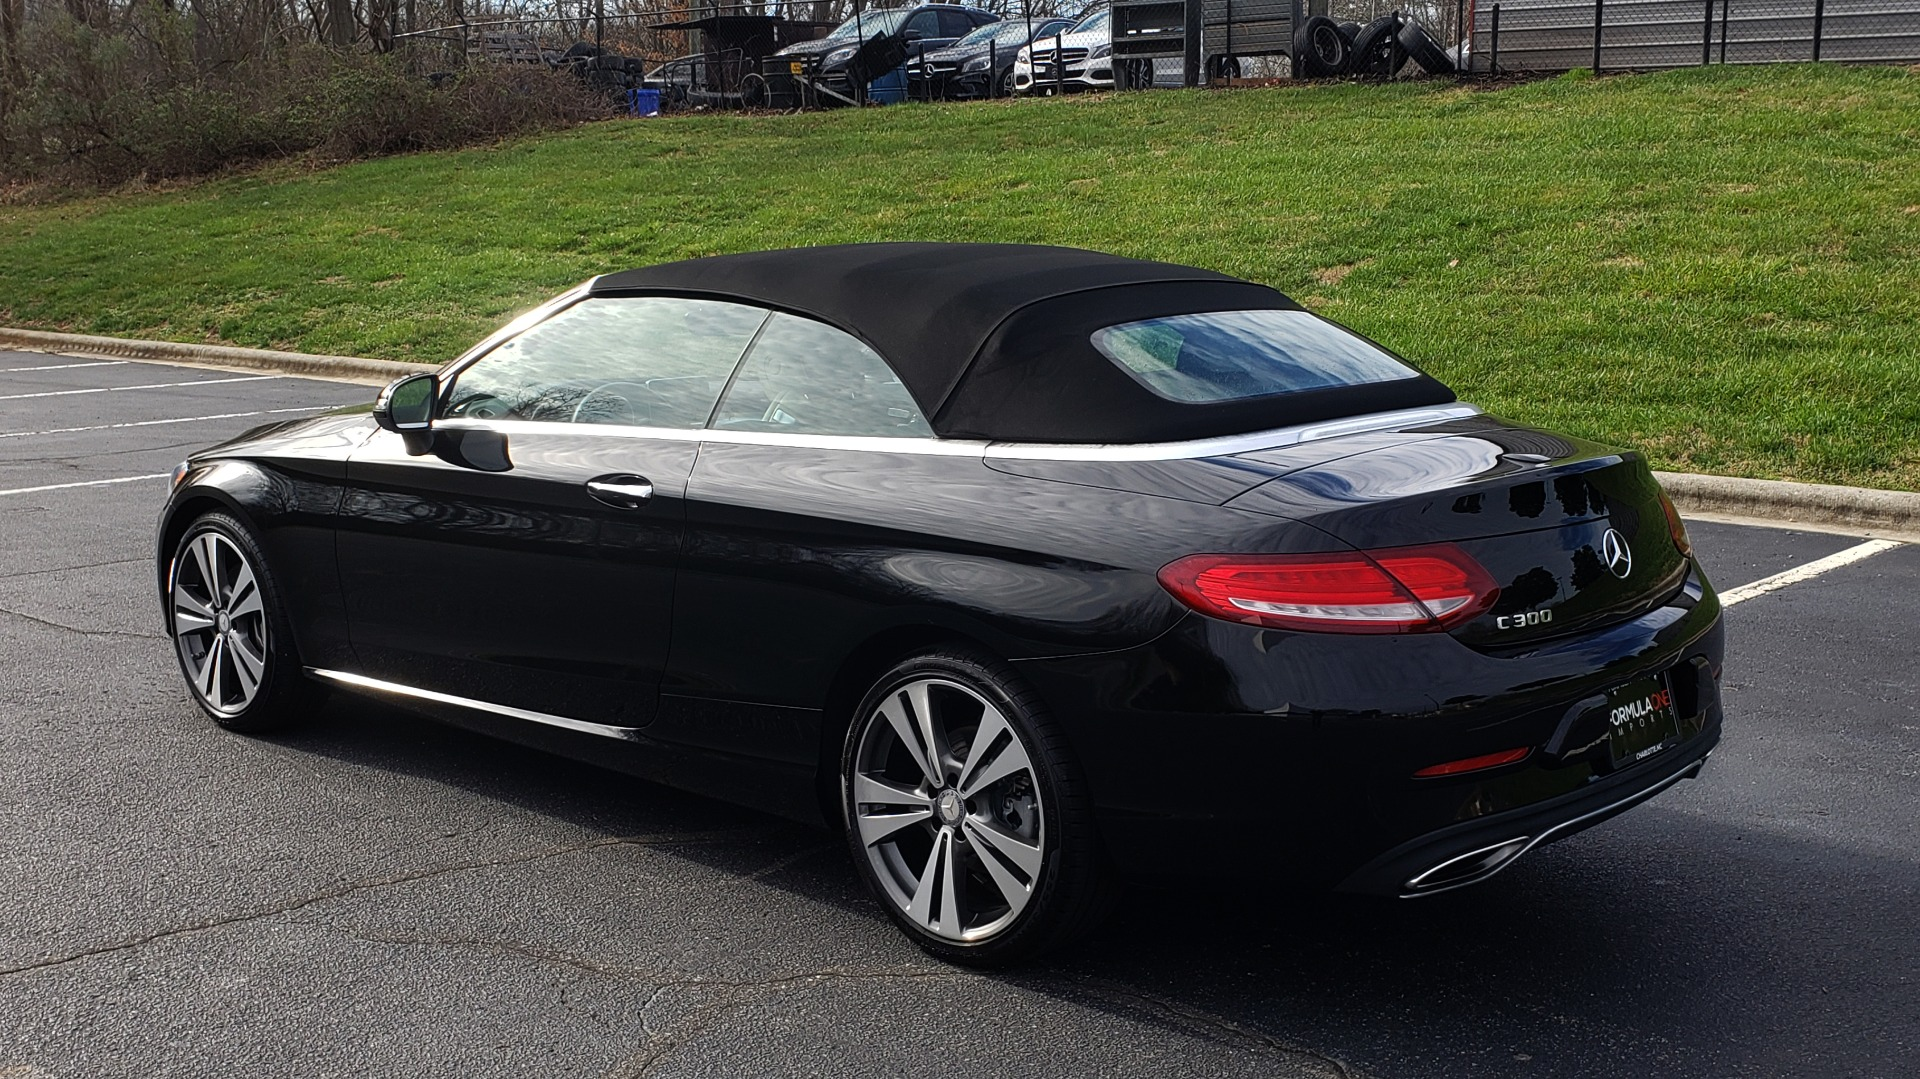 Used 2017 Mercedes-Benz C-Class C 300 CABRIOLET SPORT / PREMIUM / NAV / BURMESTER SOUND for sale Sold at Formula Imports in Charlotte NC 28227 7